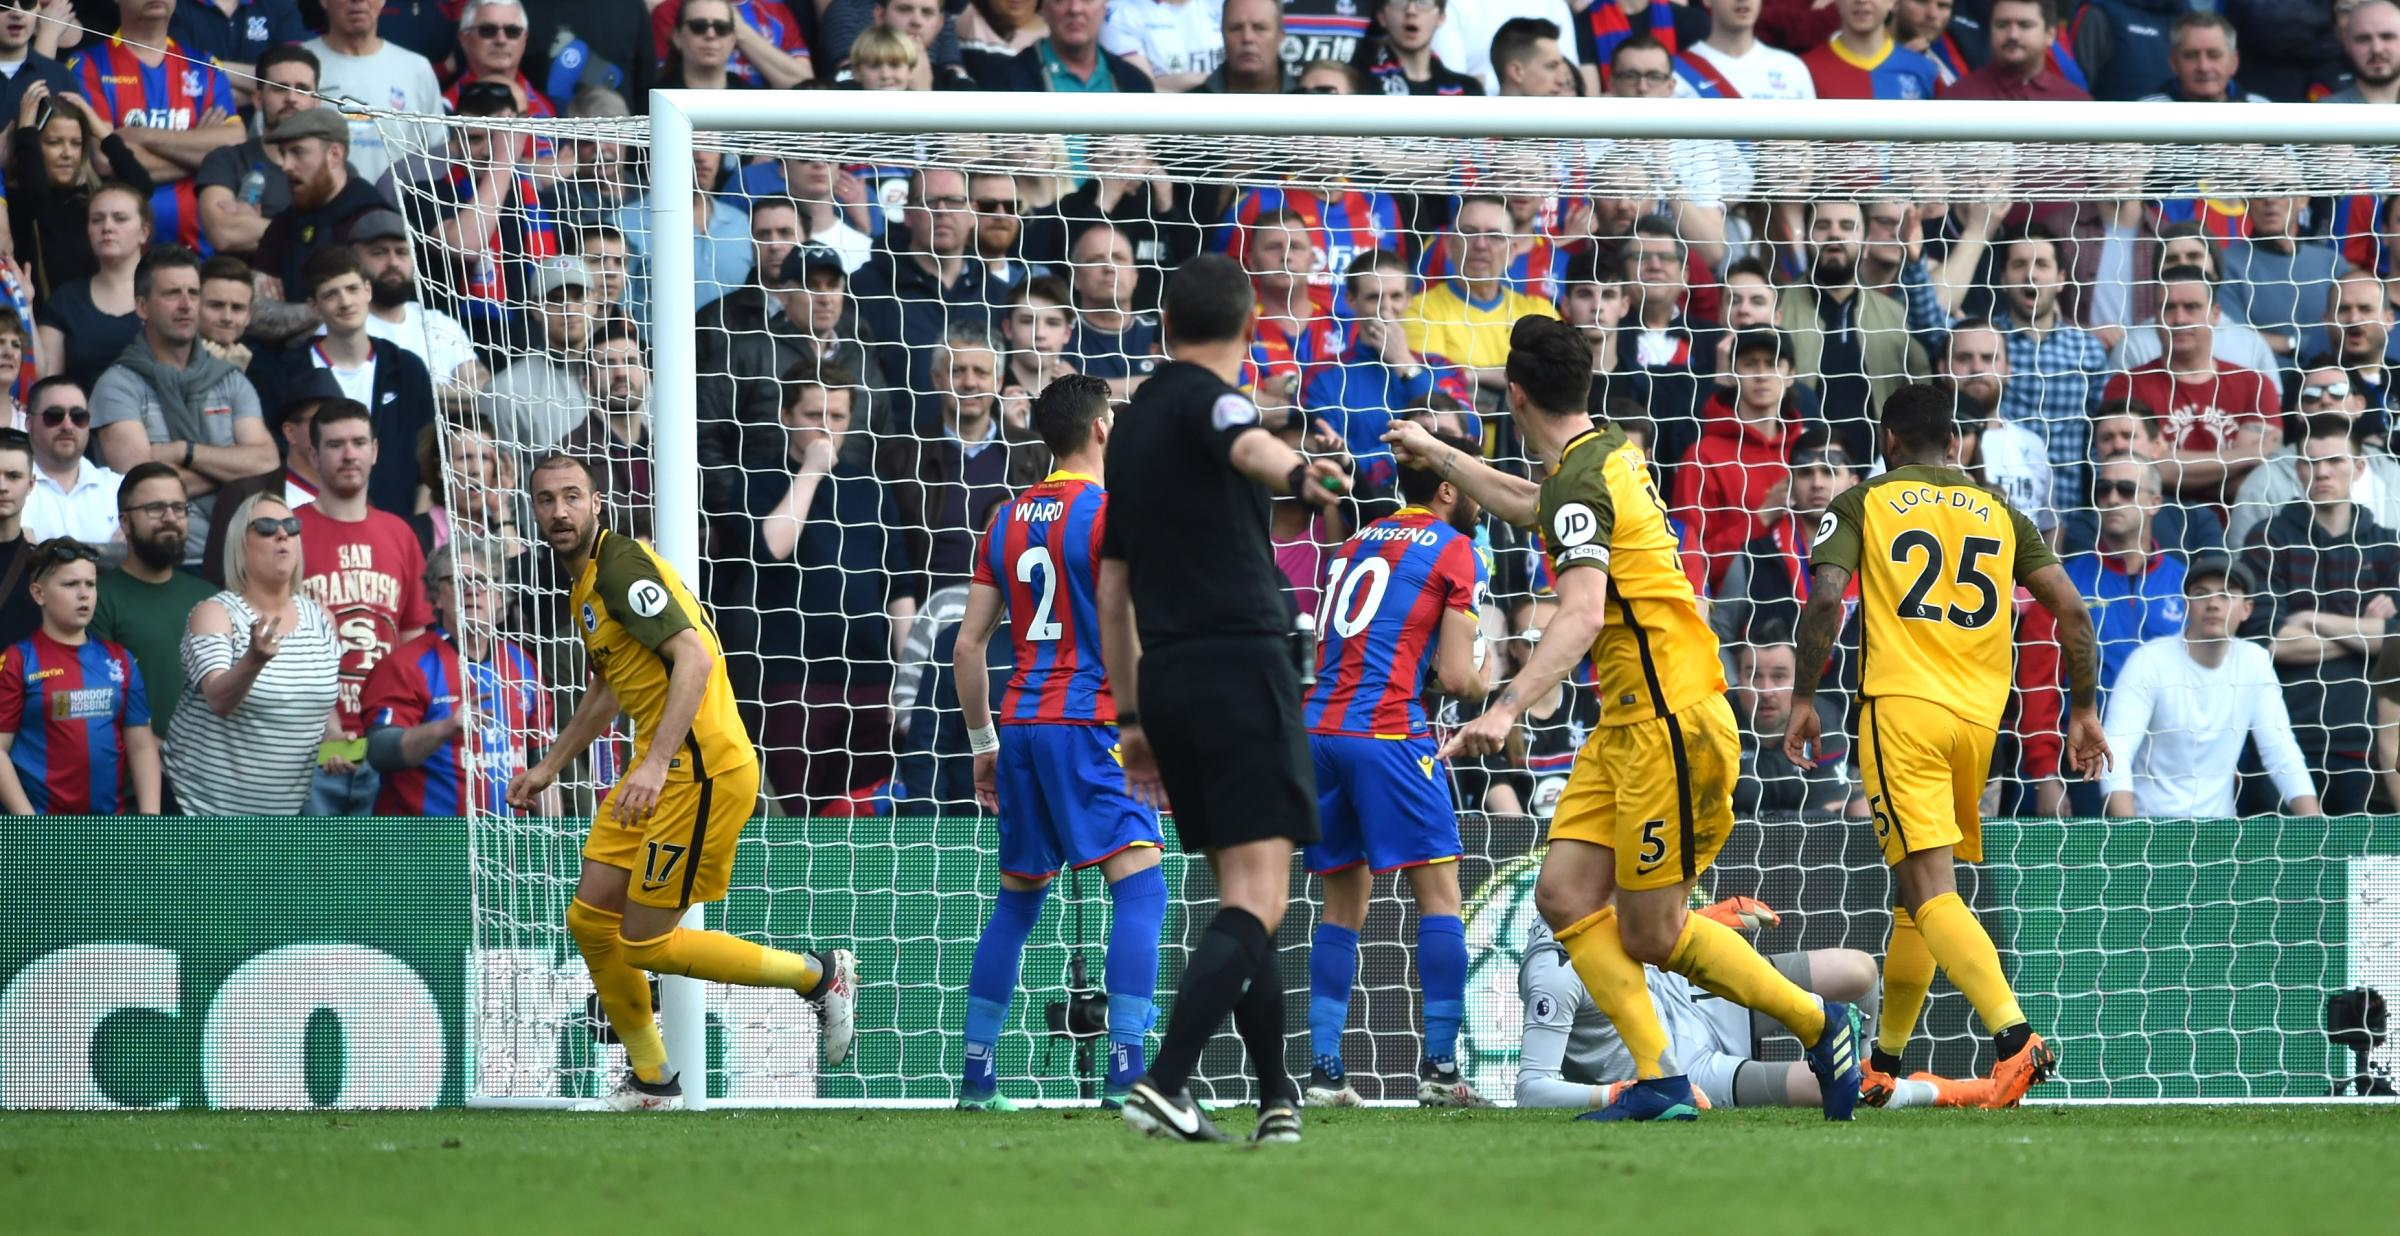 Glenn Murray (left) scoring the last time Albion played Palace at Selhurst Park